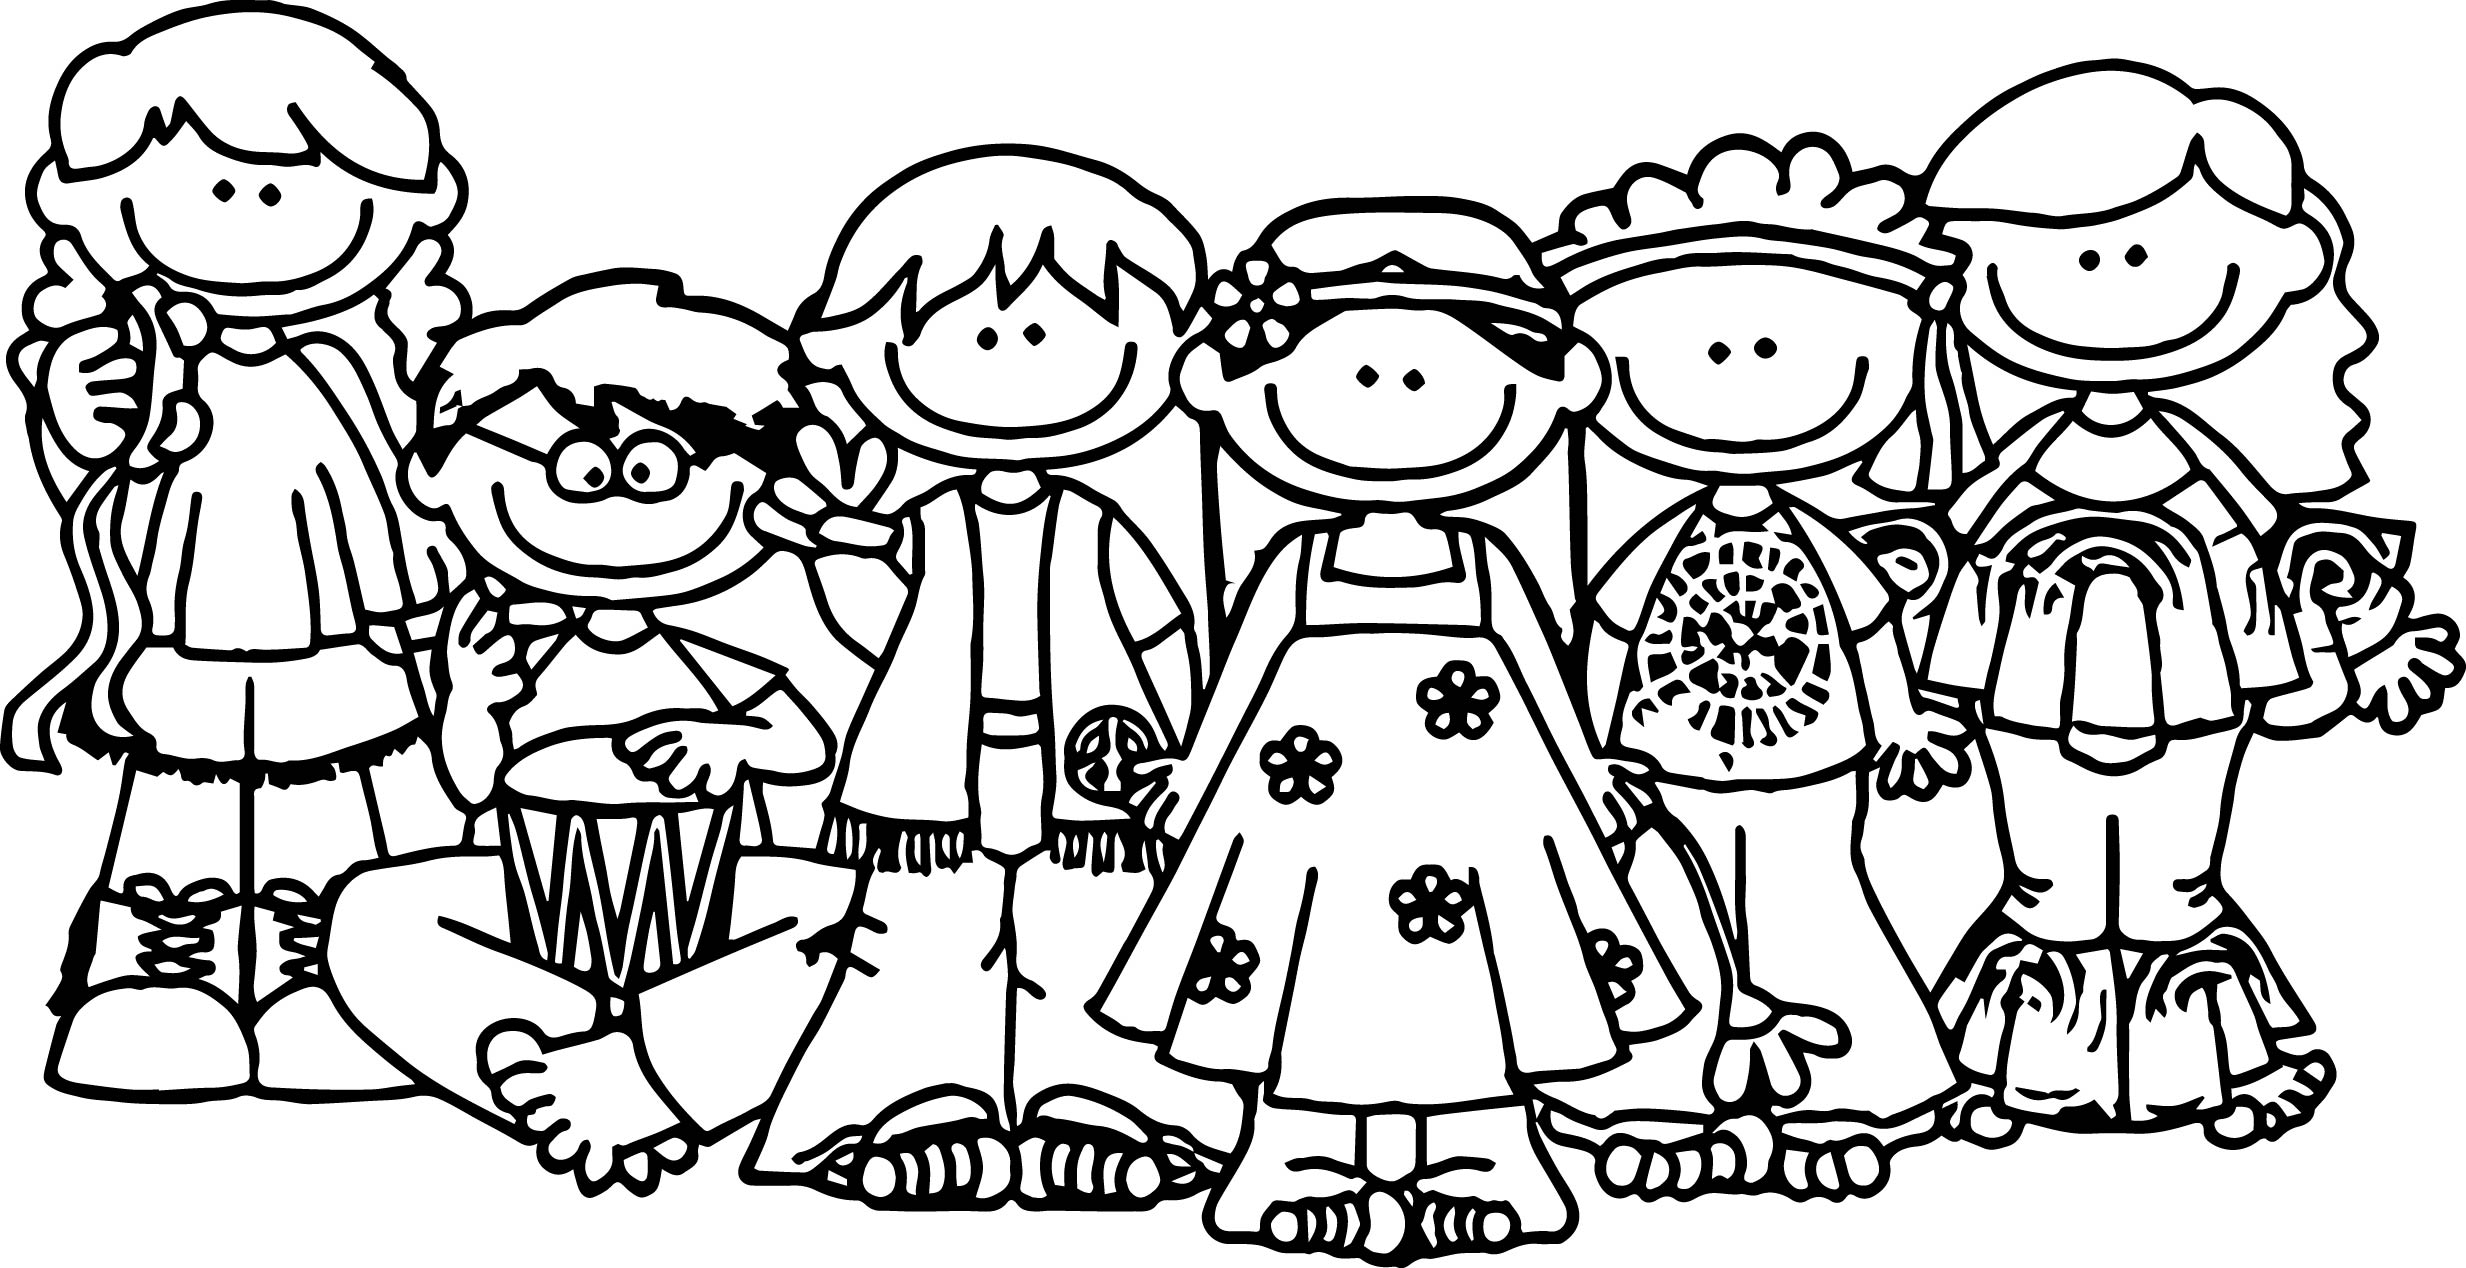 Group Of People Coloring Pages For Kids Gkid The